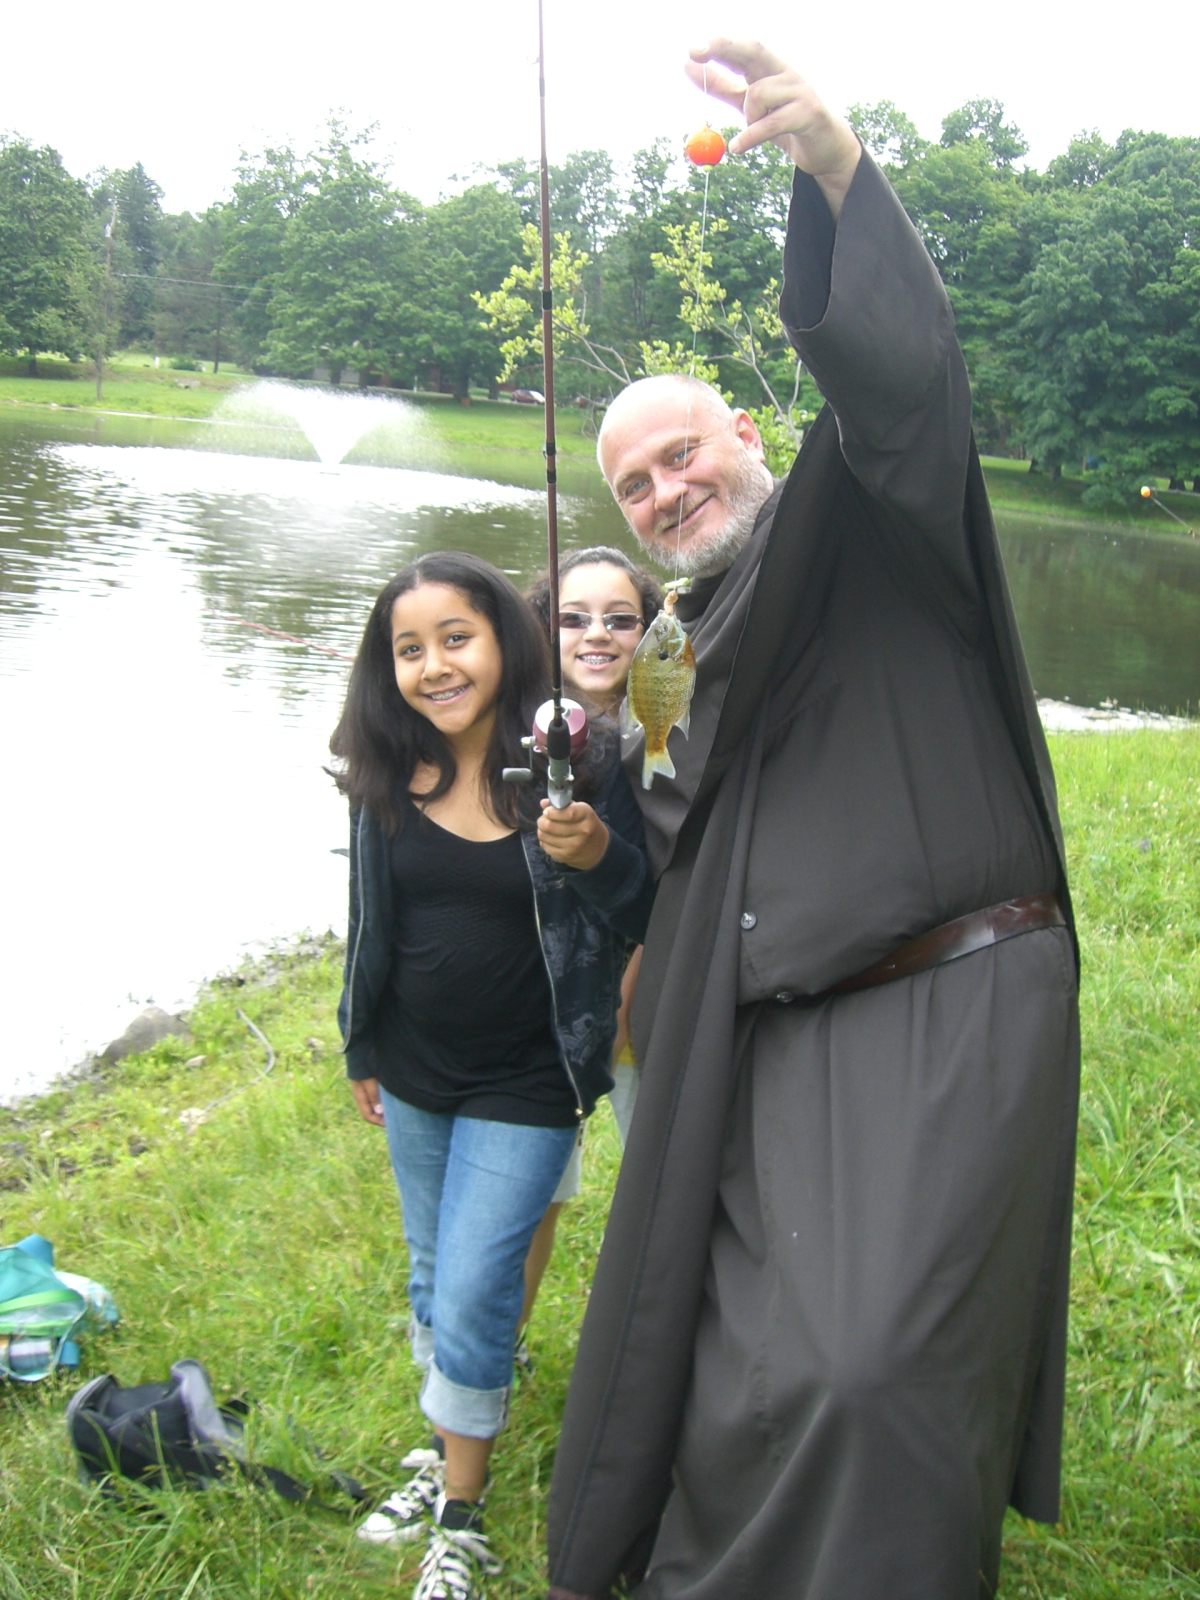 Fishing with Br. Robert